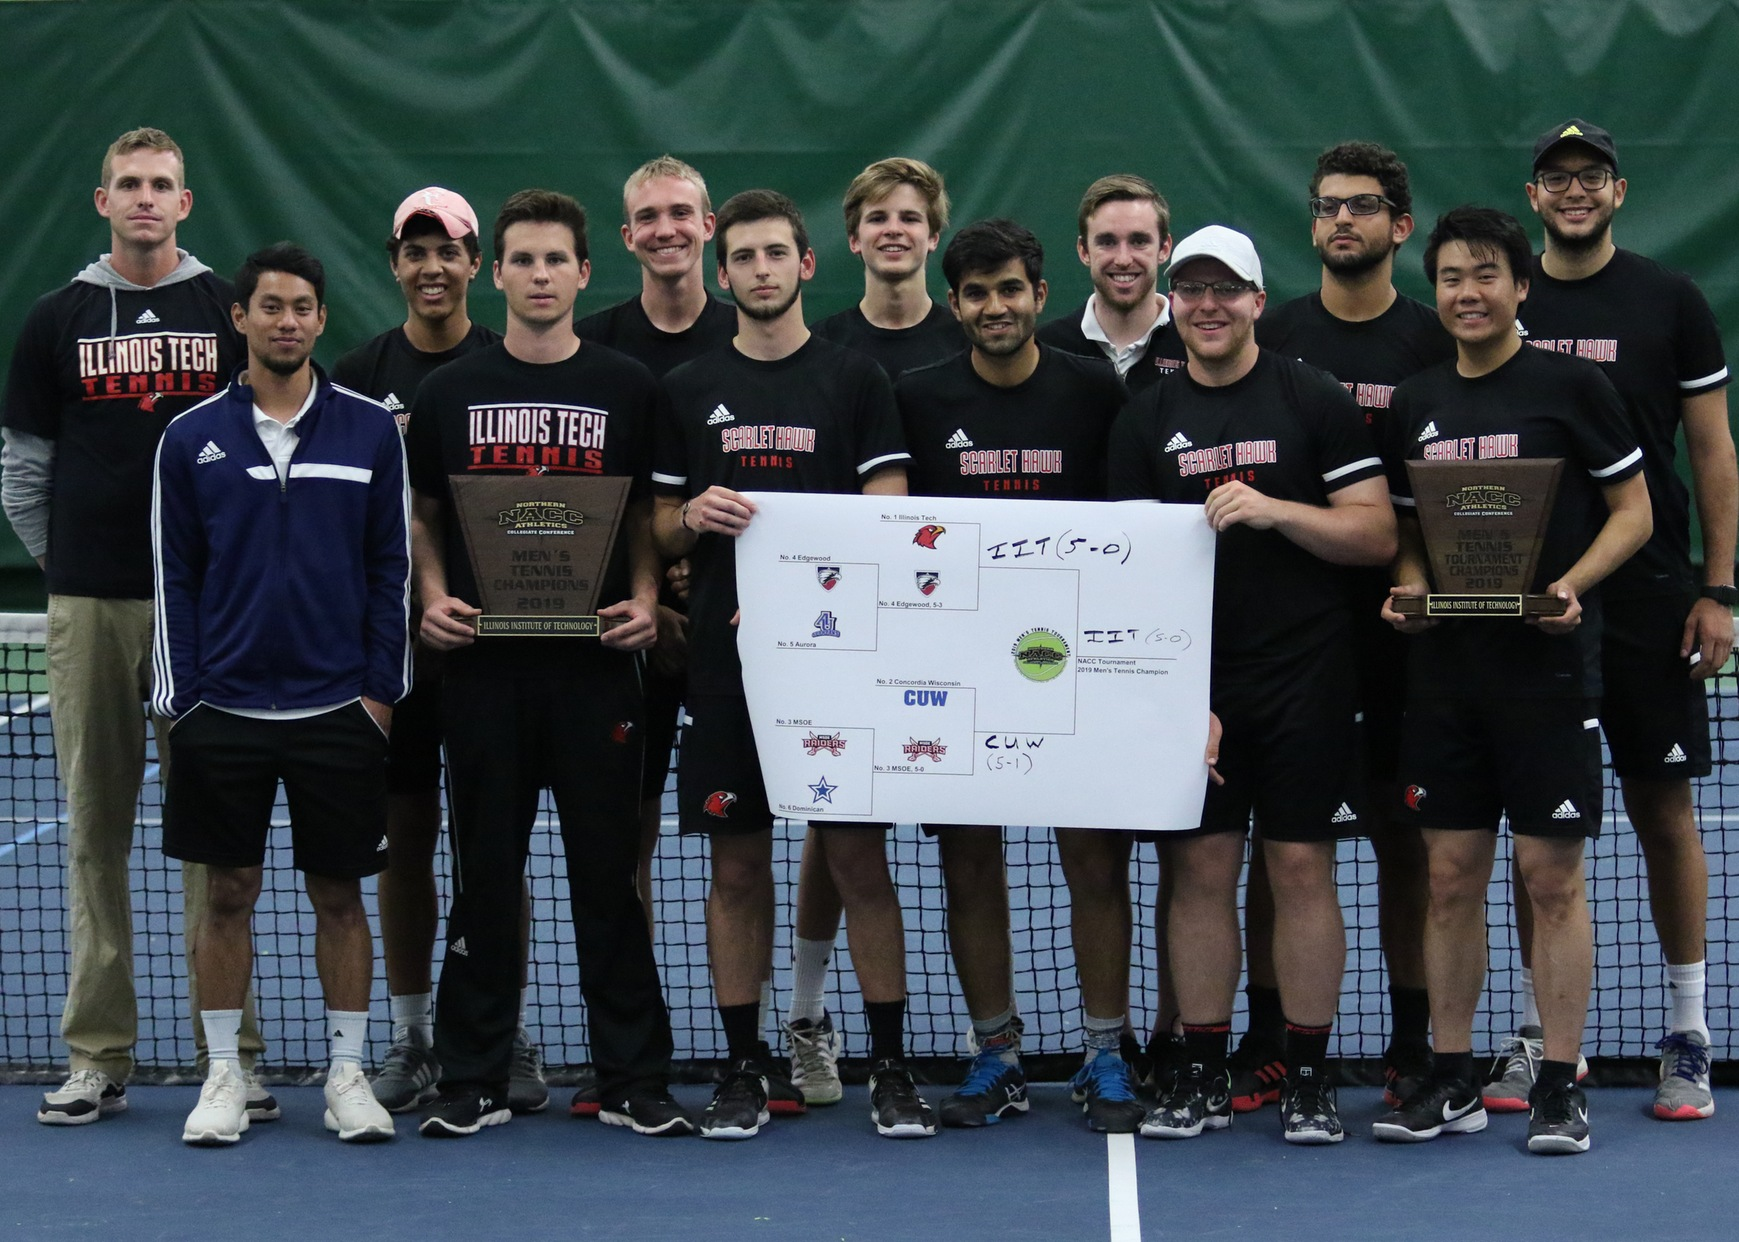 2019 NACC Men's Tennis Tournament champions -- Illinois Tech